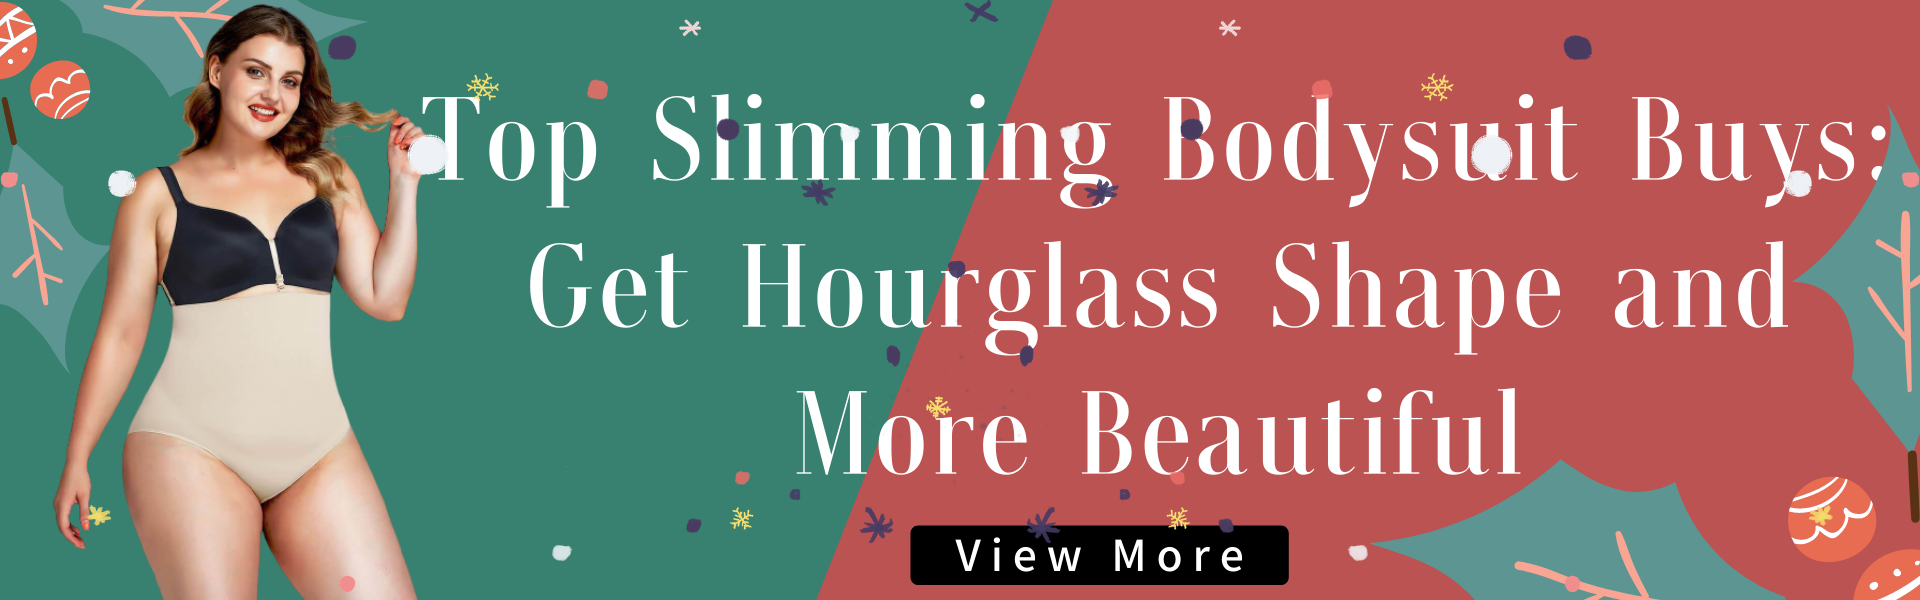 Top Slimming Bodysuit Buys: Get Hourglass Shape and More Beautiful